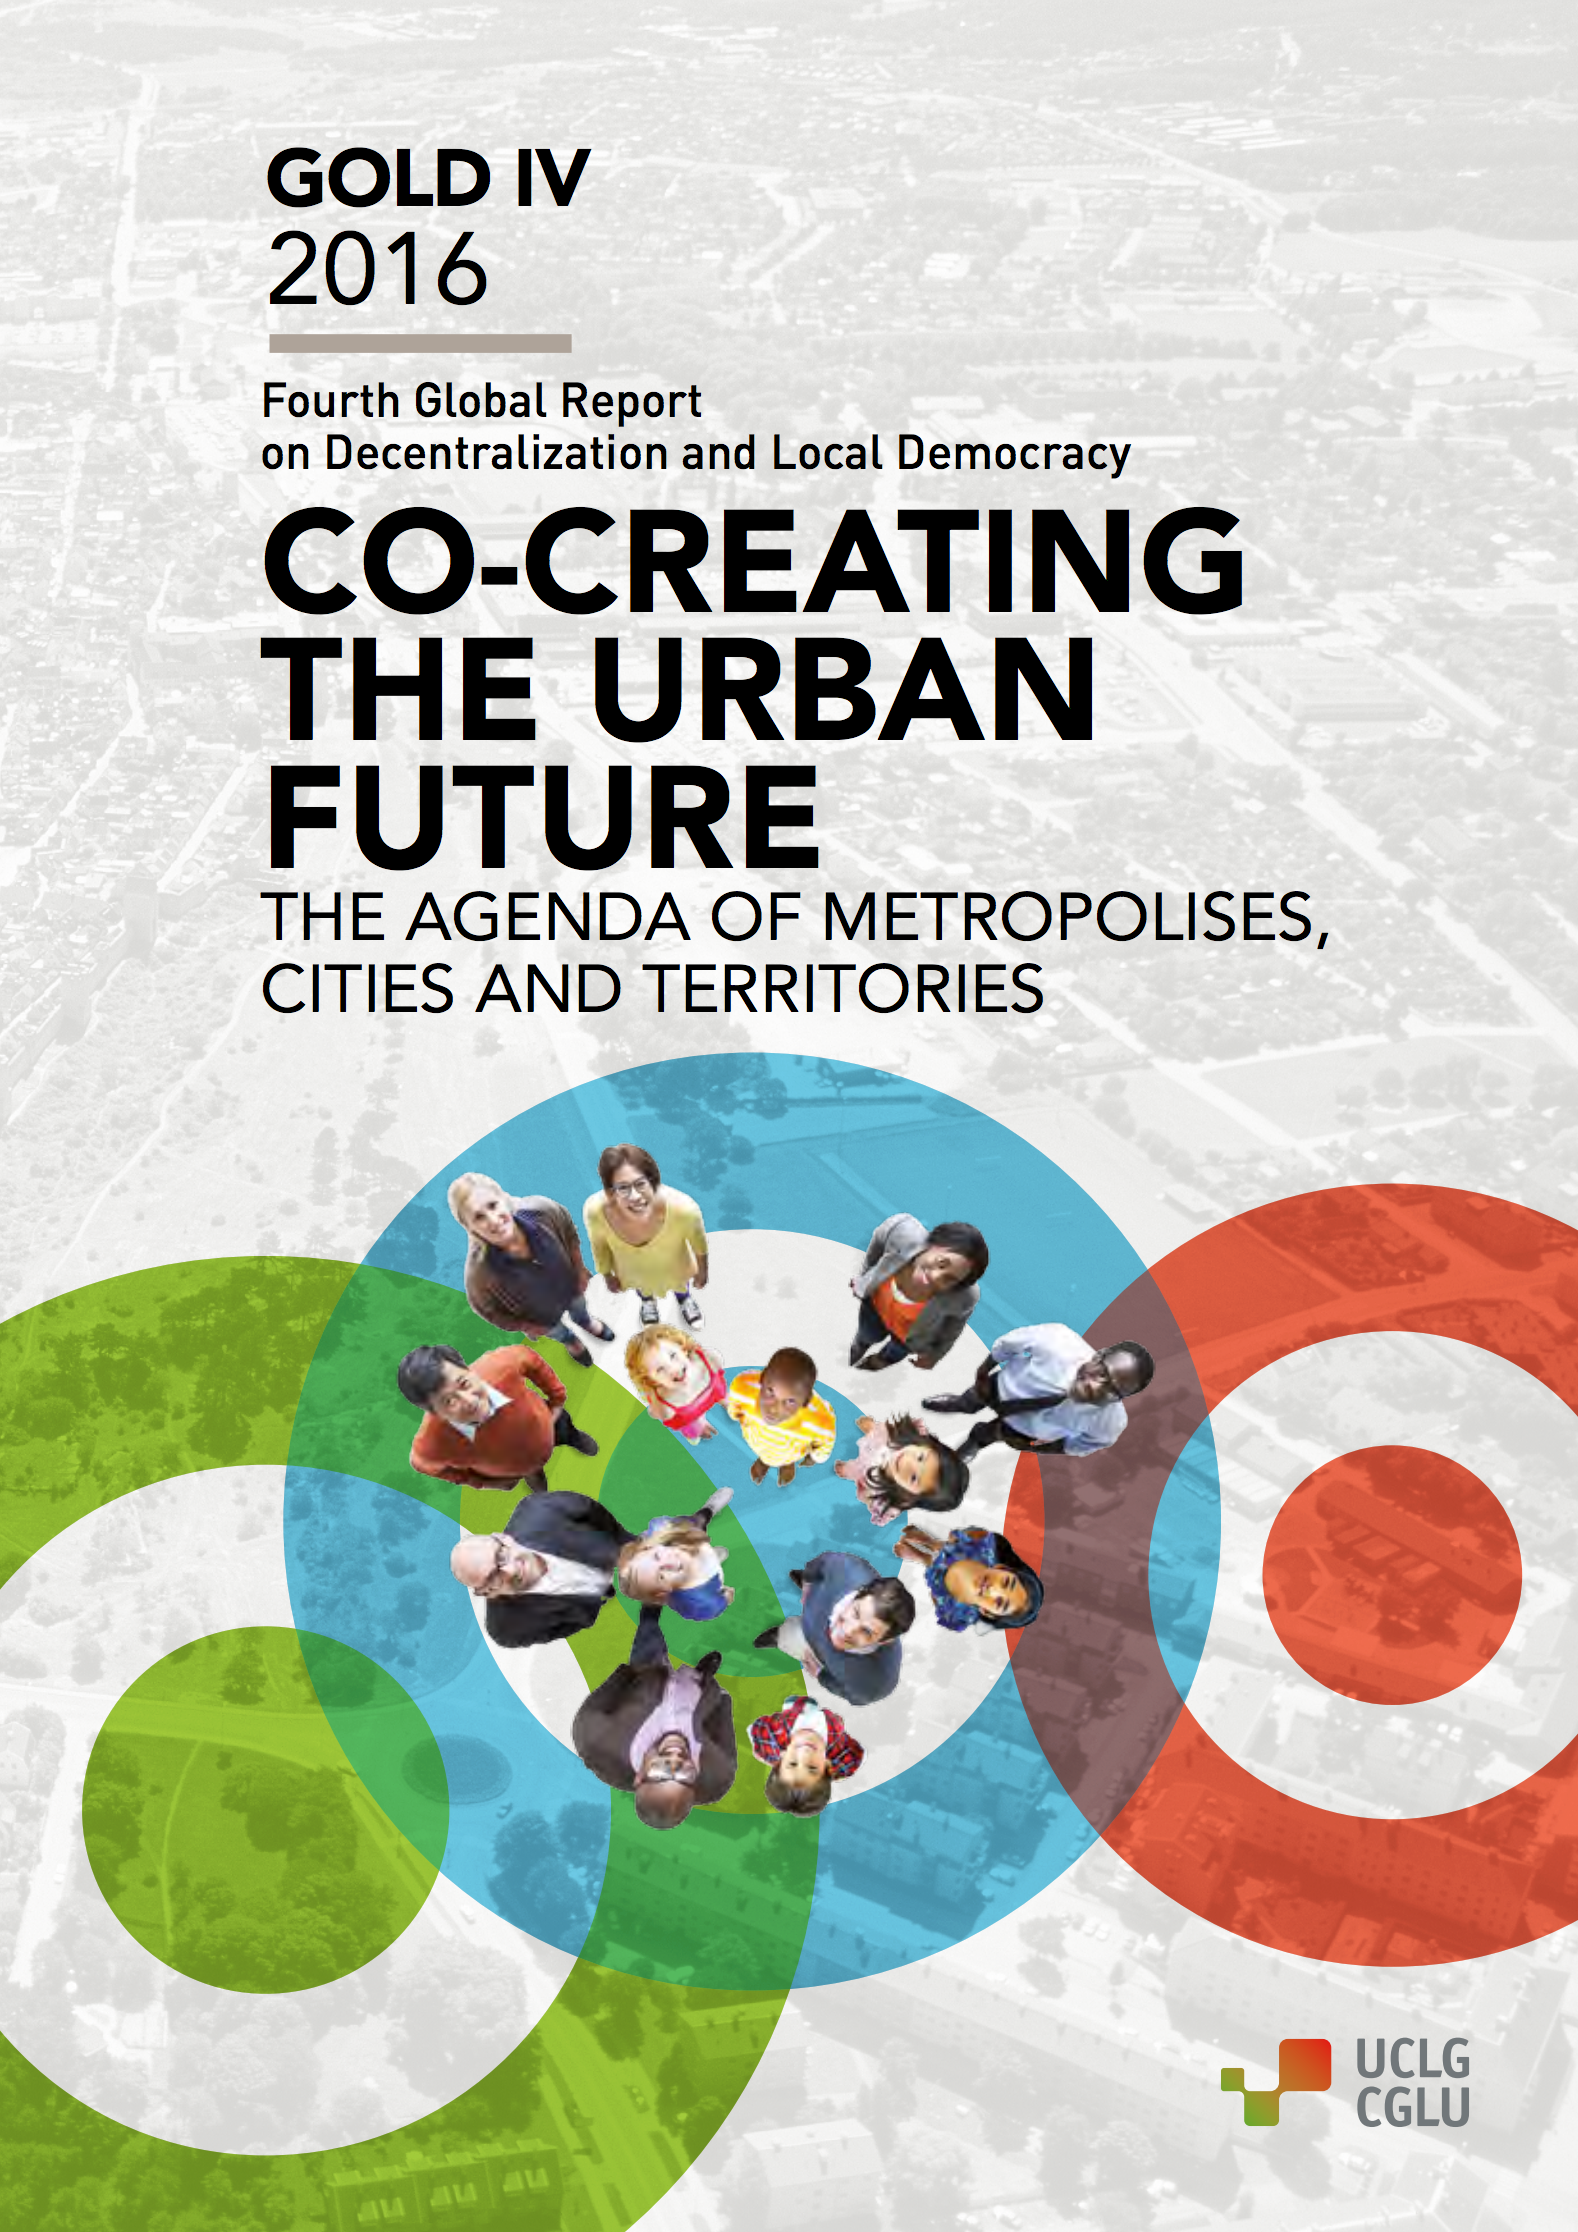 Fourth Global Report on Decentralization and Local Democracy: Co-creating the Urban Future